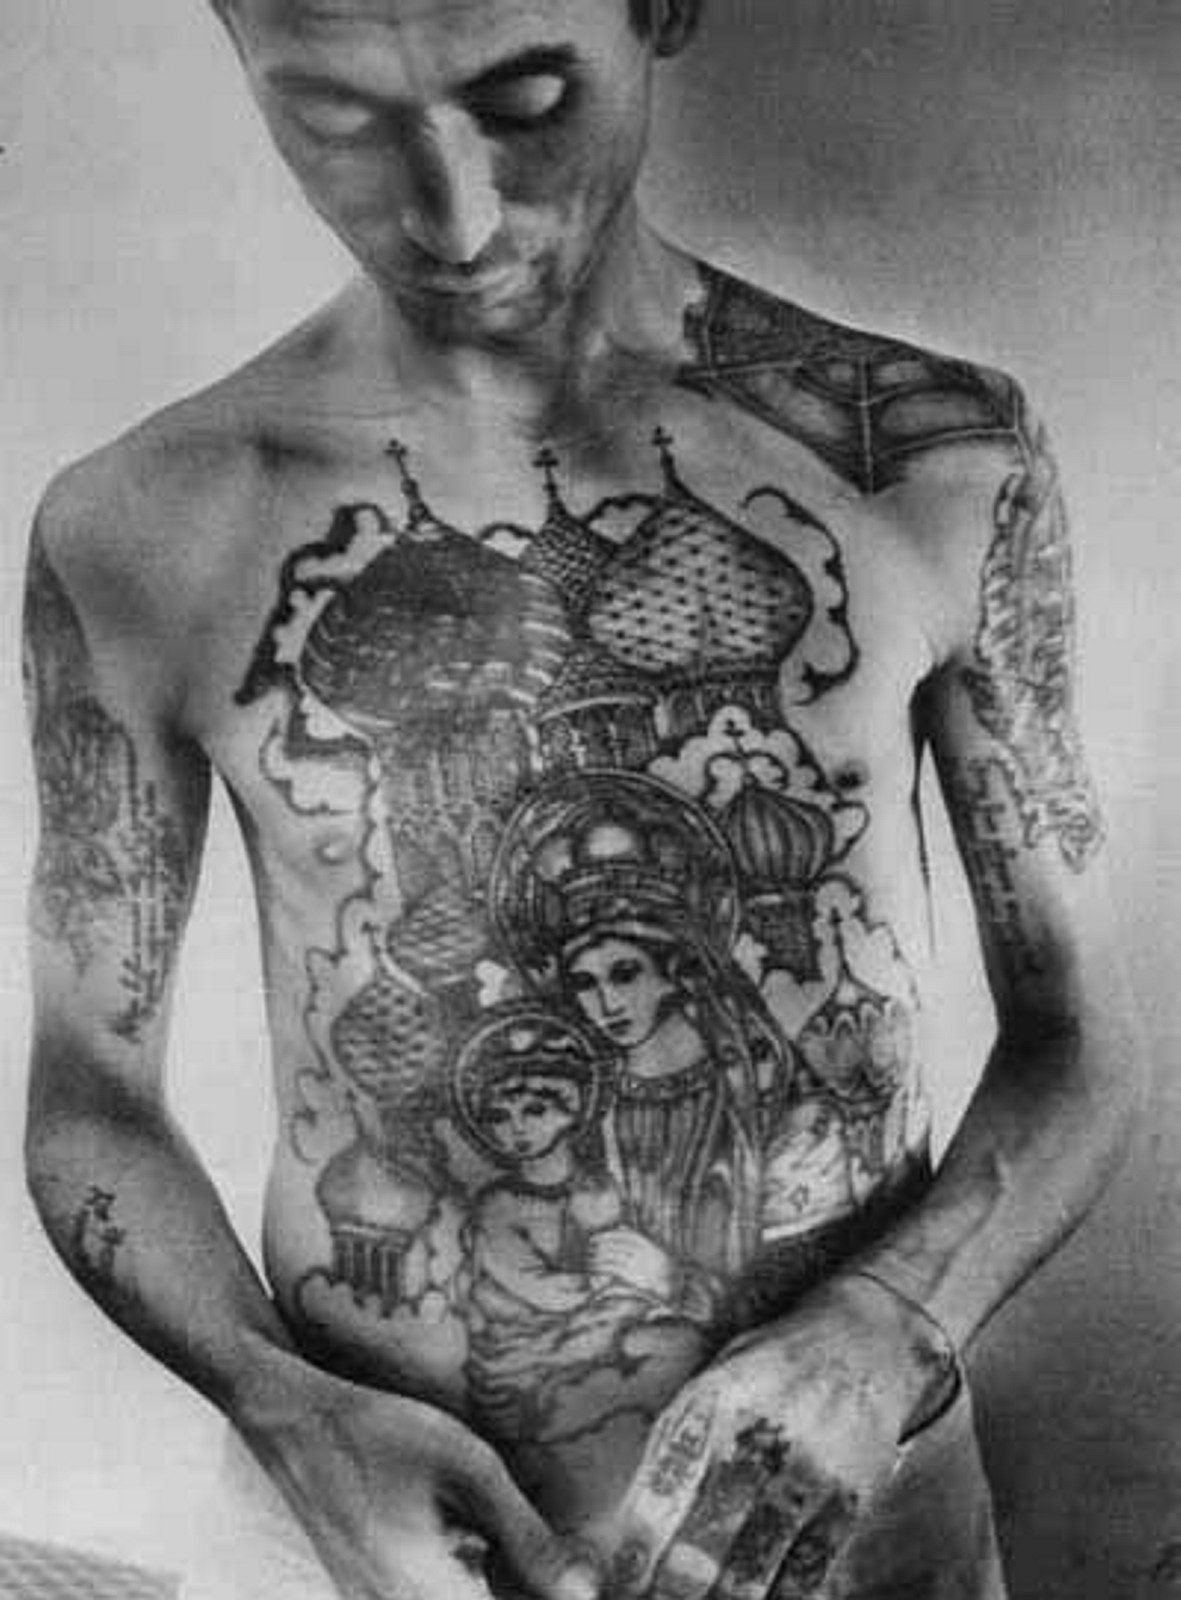 Russian Tattoo Meanings Wiki: The Symbolism Of Russian Prison Tattoos